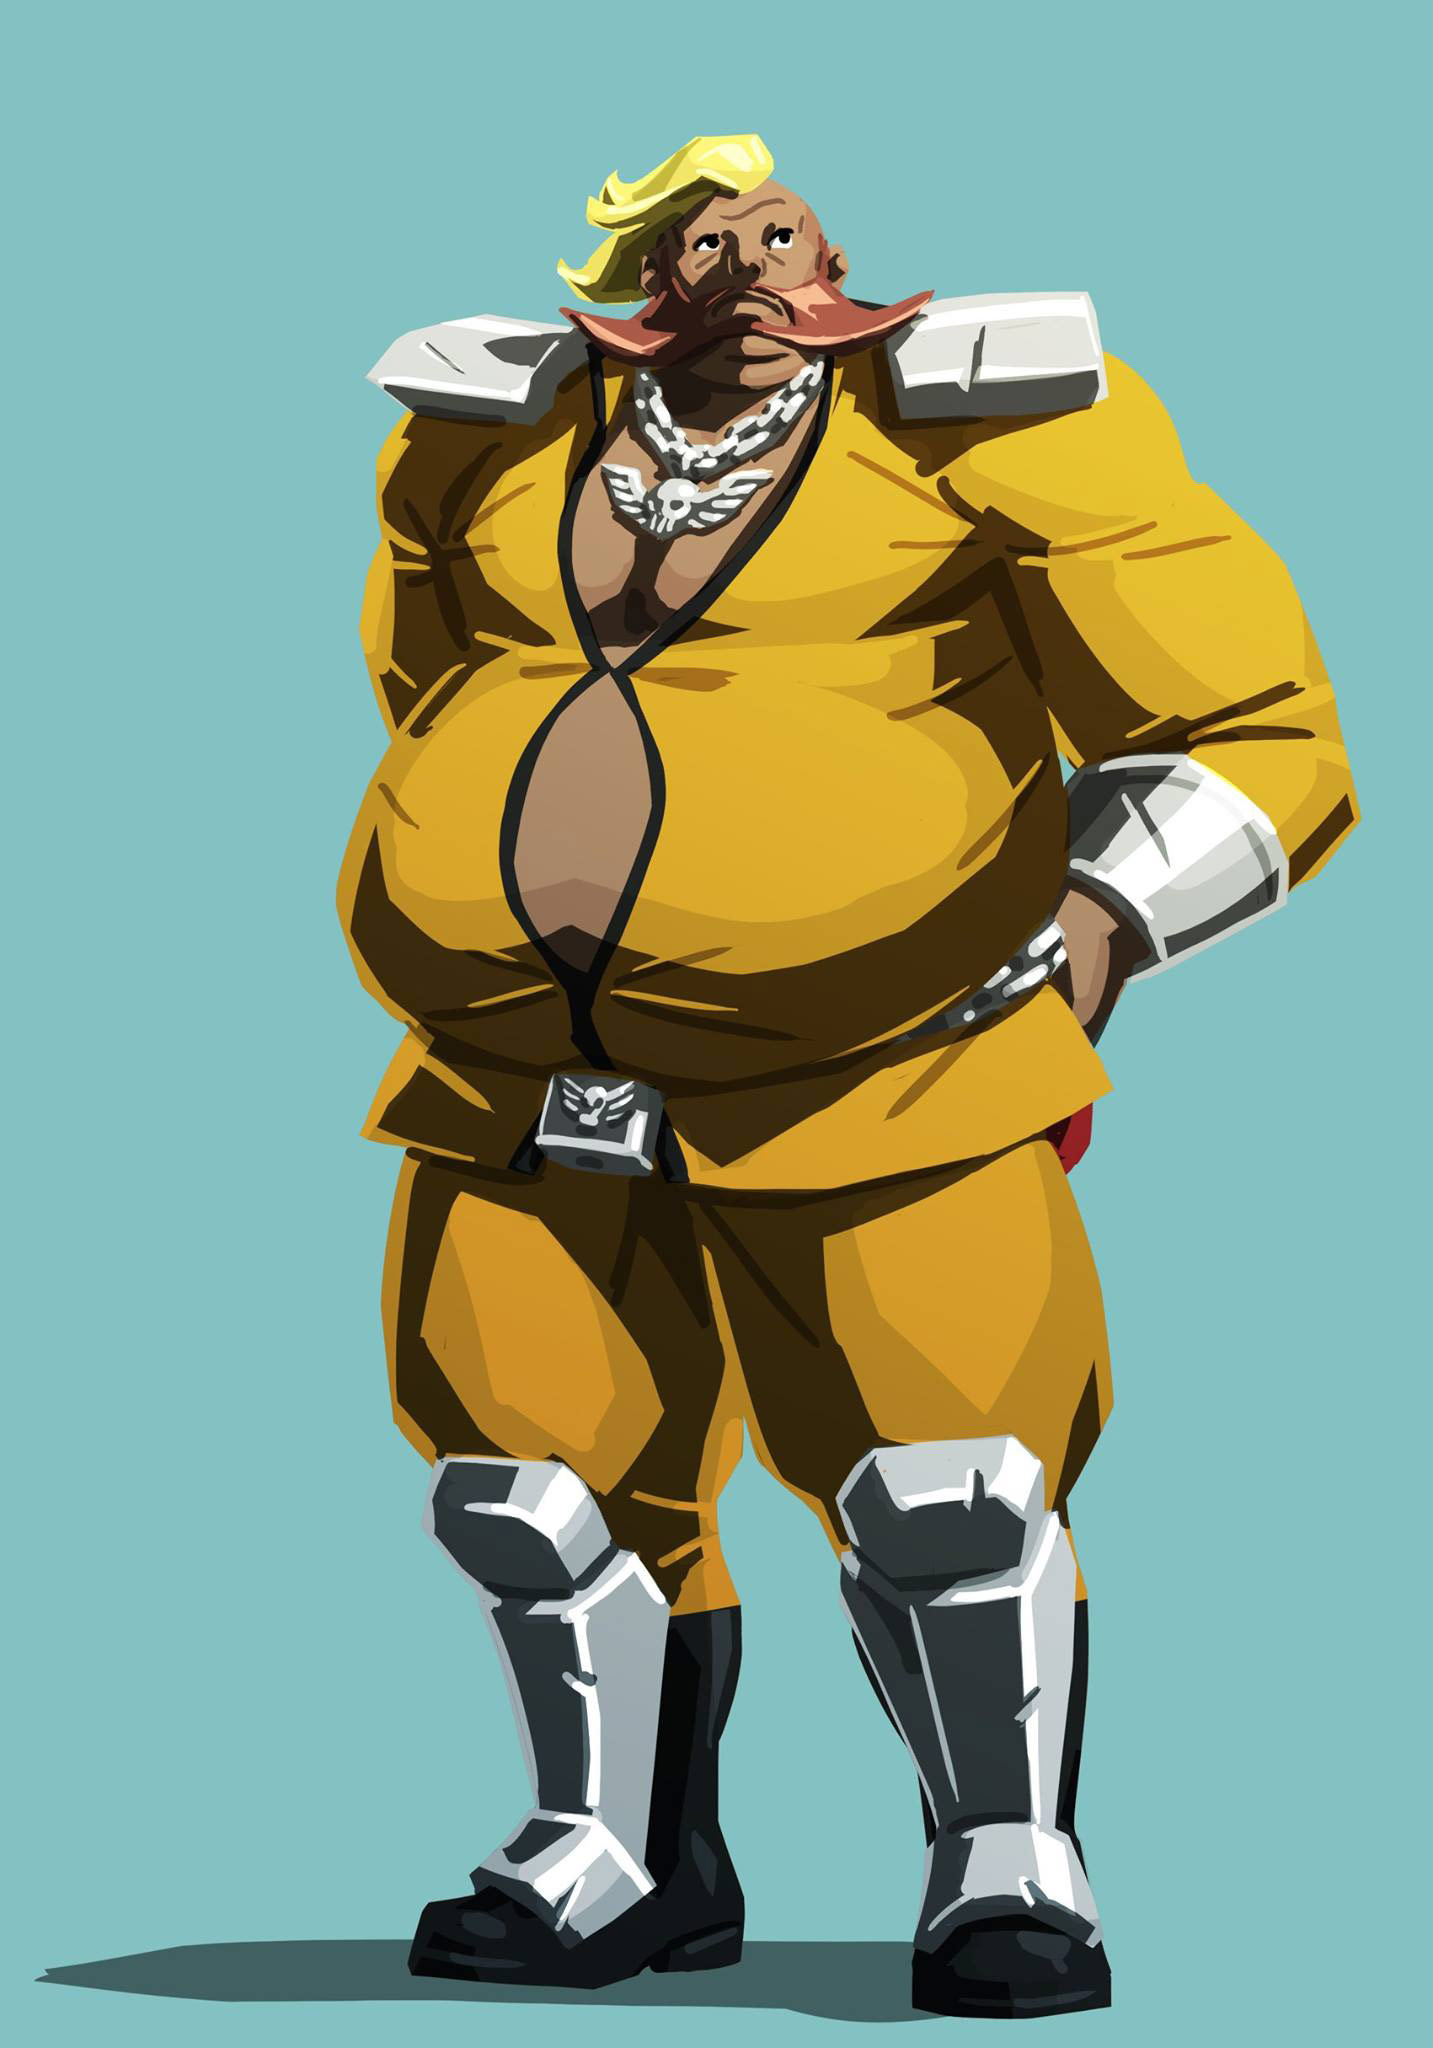 Street Fighter 5 story mode costume concept art 6 out of 13 image gallery